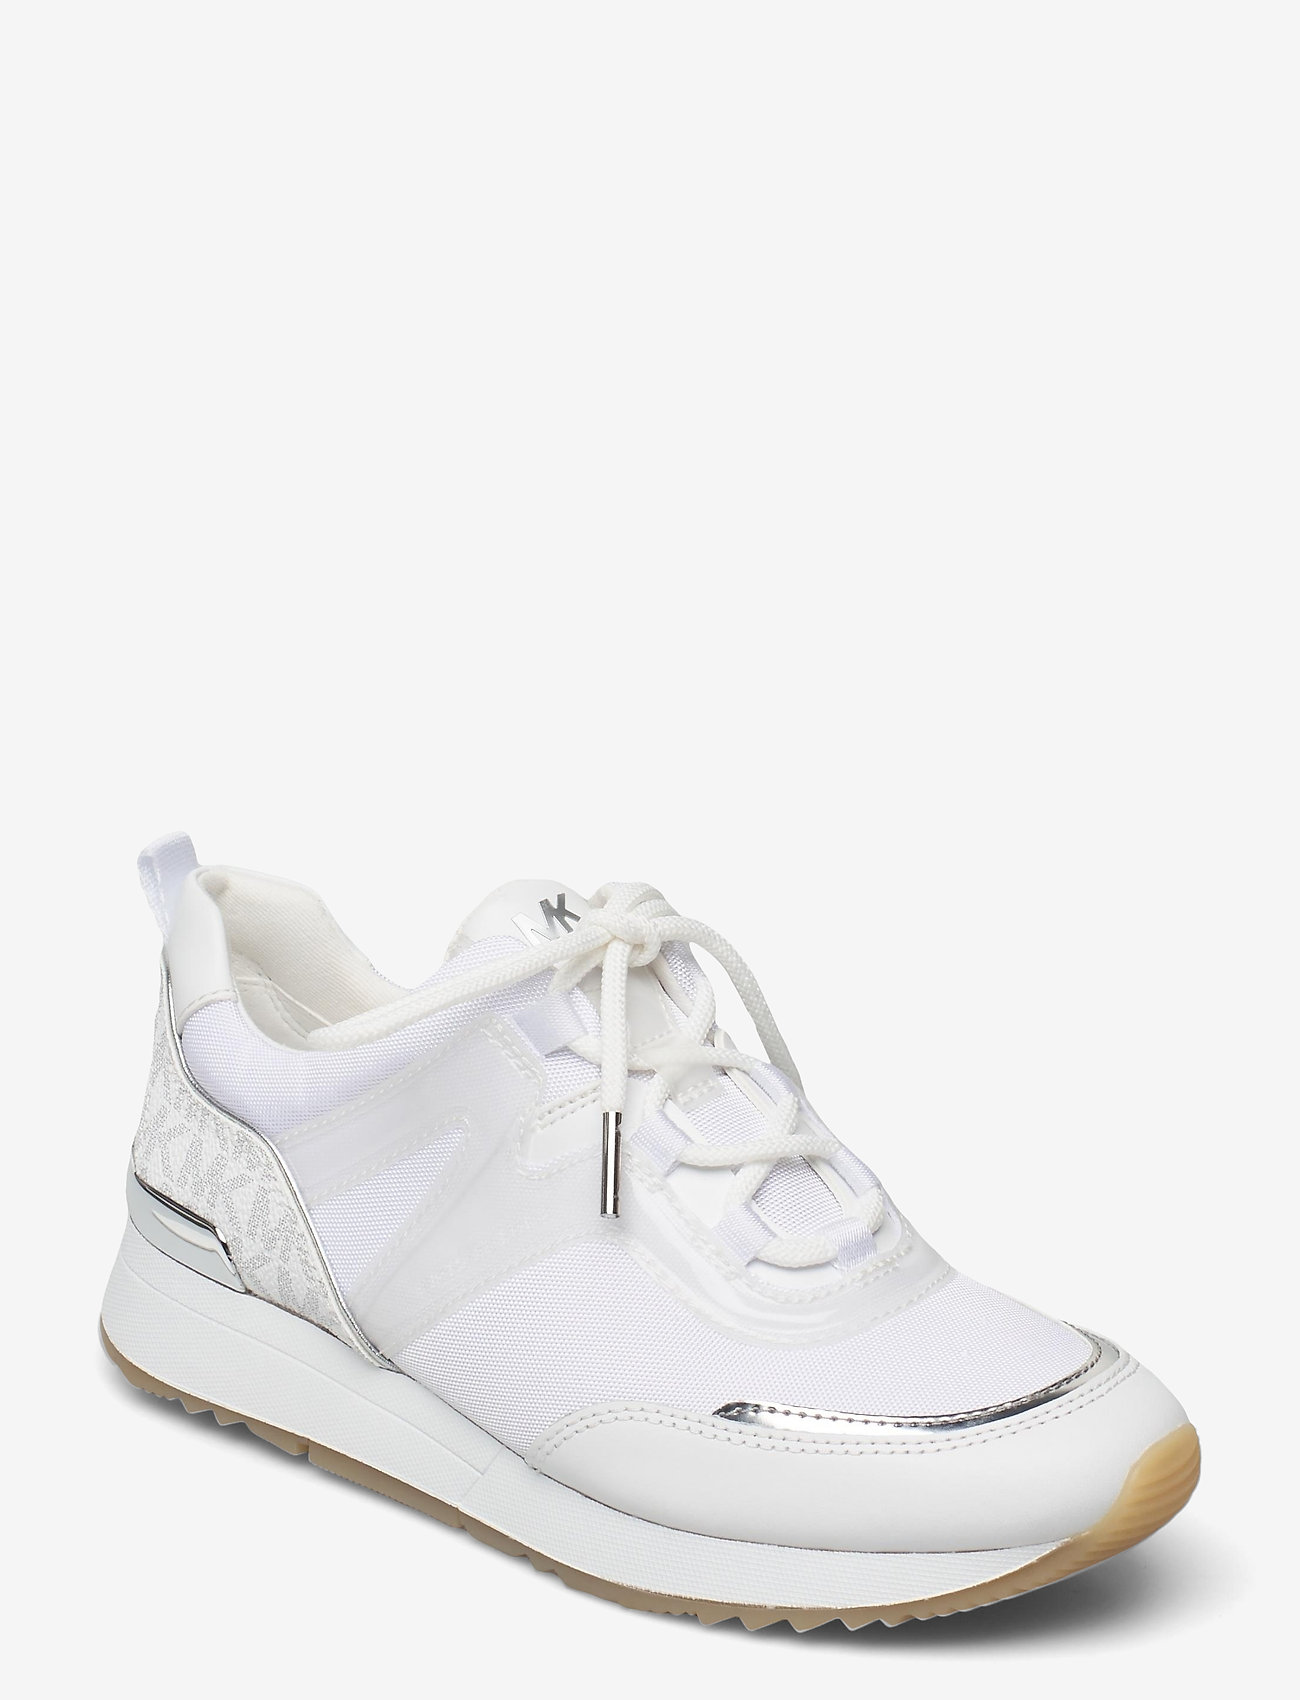 Michael Kors - PIPPIN TRAINER - lage sneakers - bright wht - 0